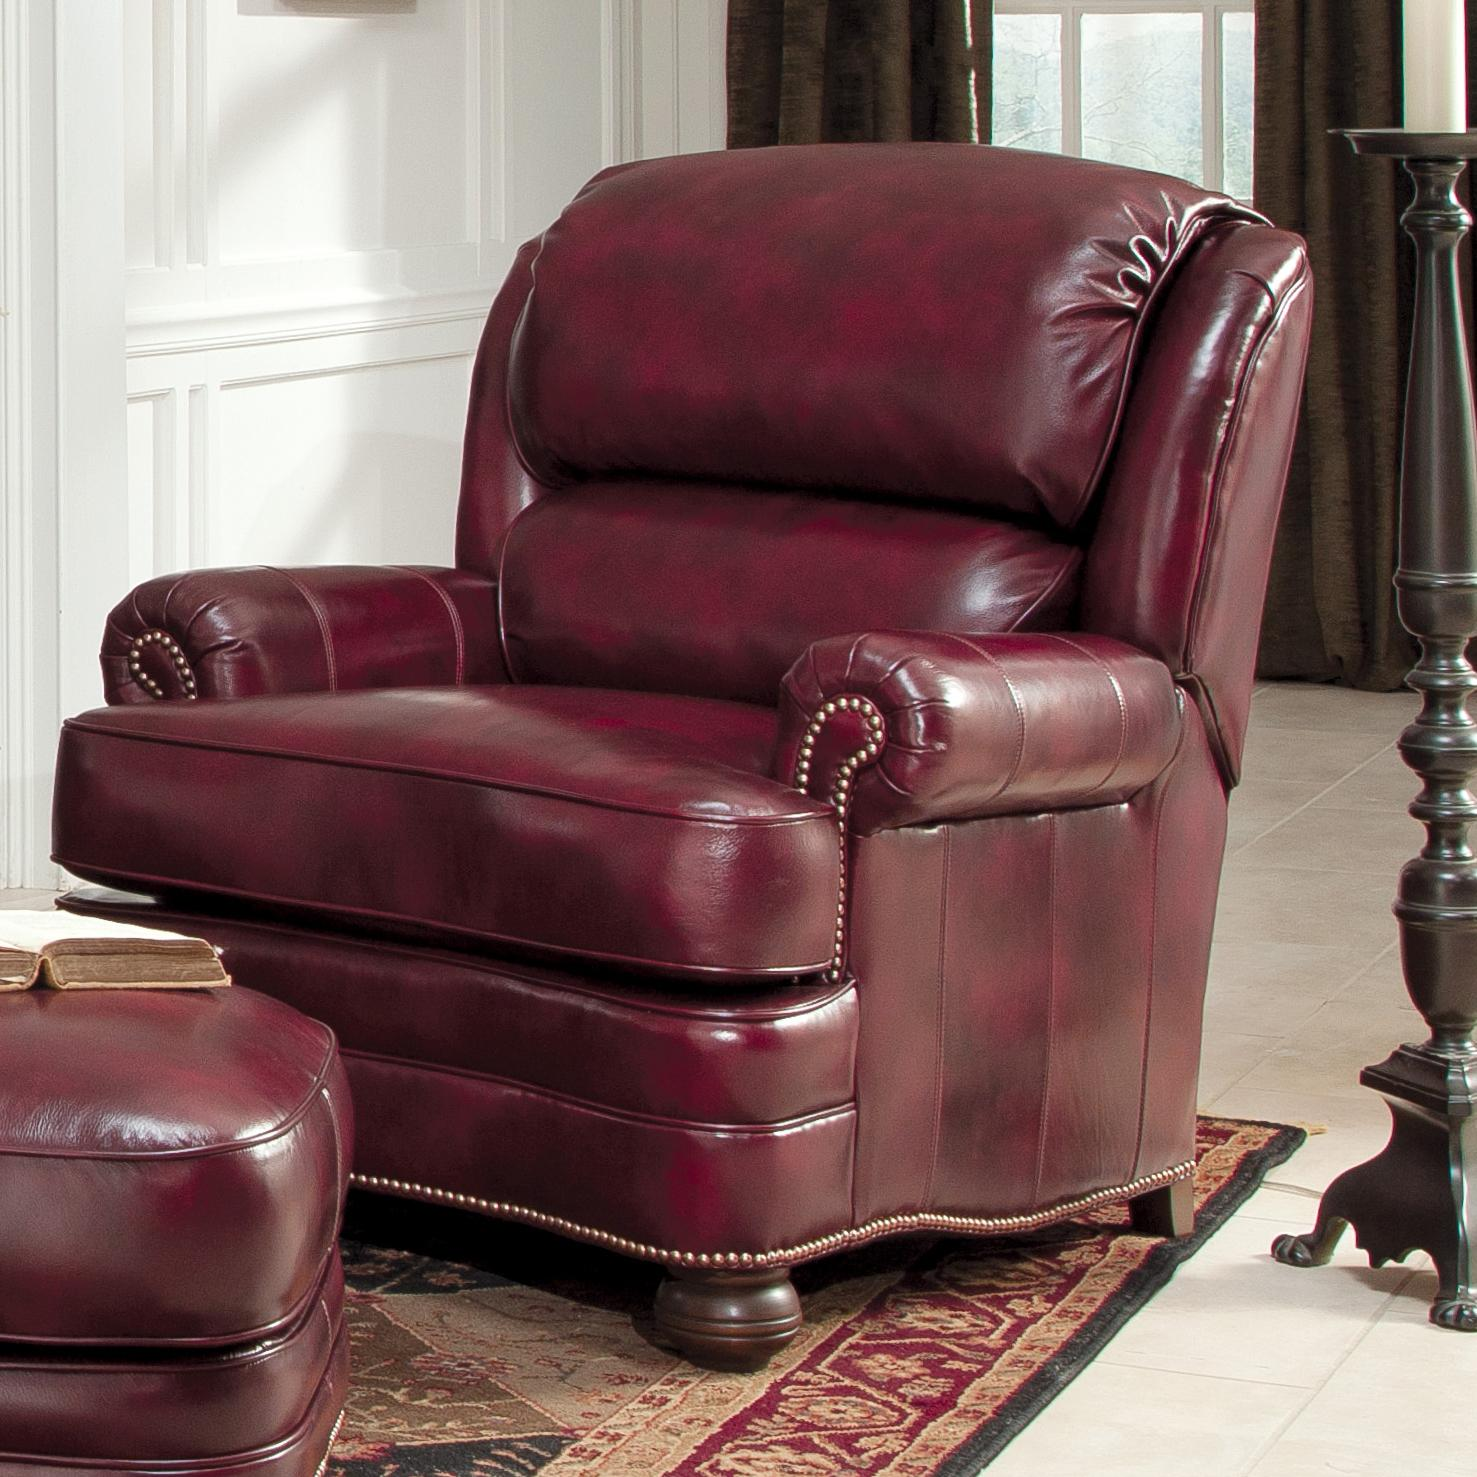 Leather Upholstered Chair and Ottoman by Smith Brothers – Upholstered Chair with Ottoman